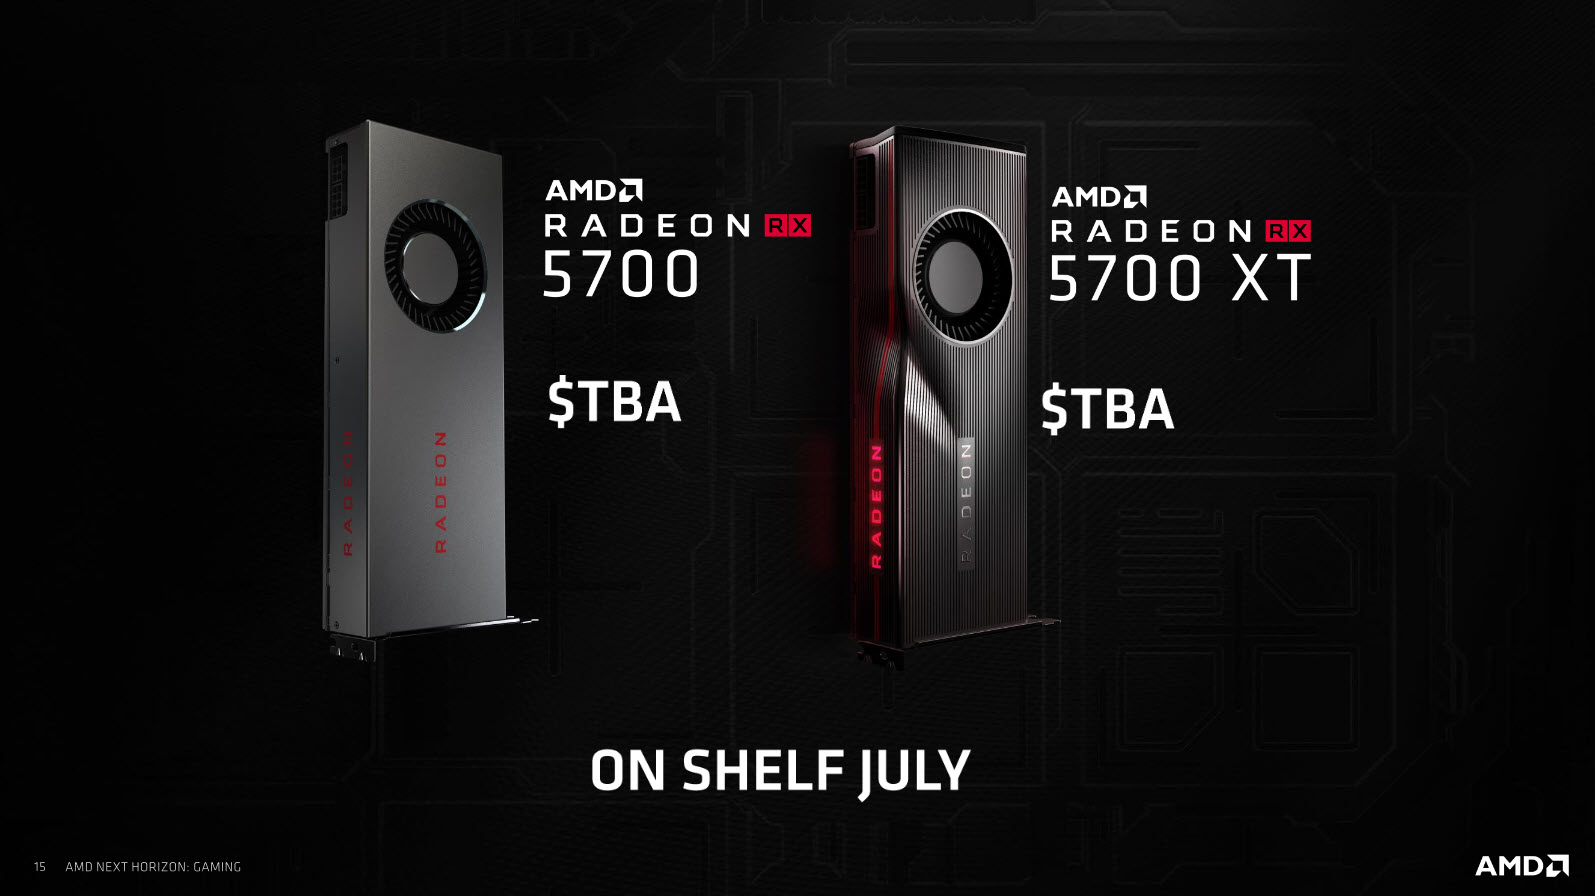 2019 07 07 9 03 49 AMD RADEON RX 5700 REVIEW